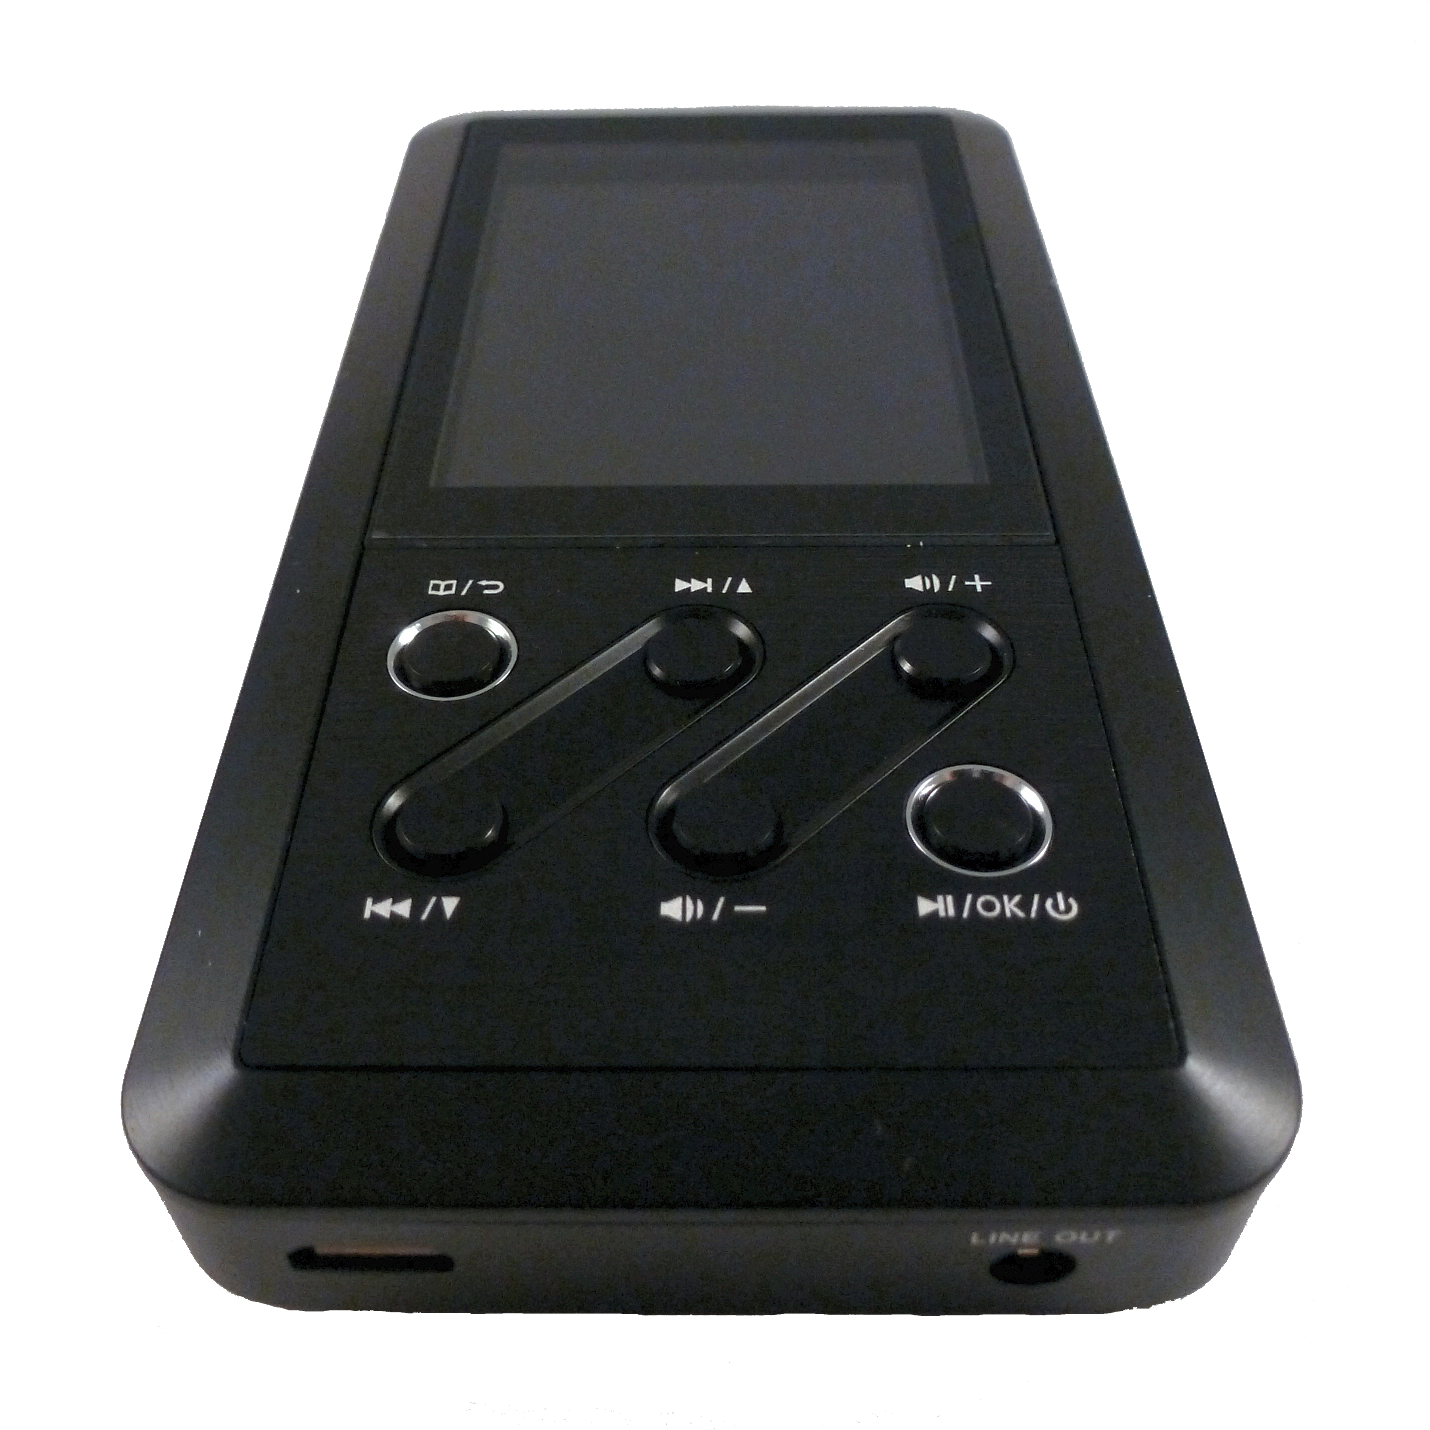 Fiio X3 24 bit digital audio player